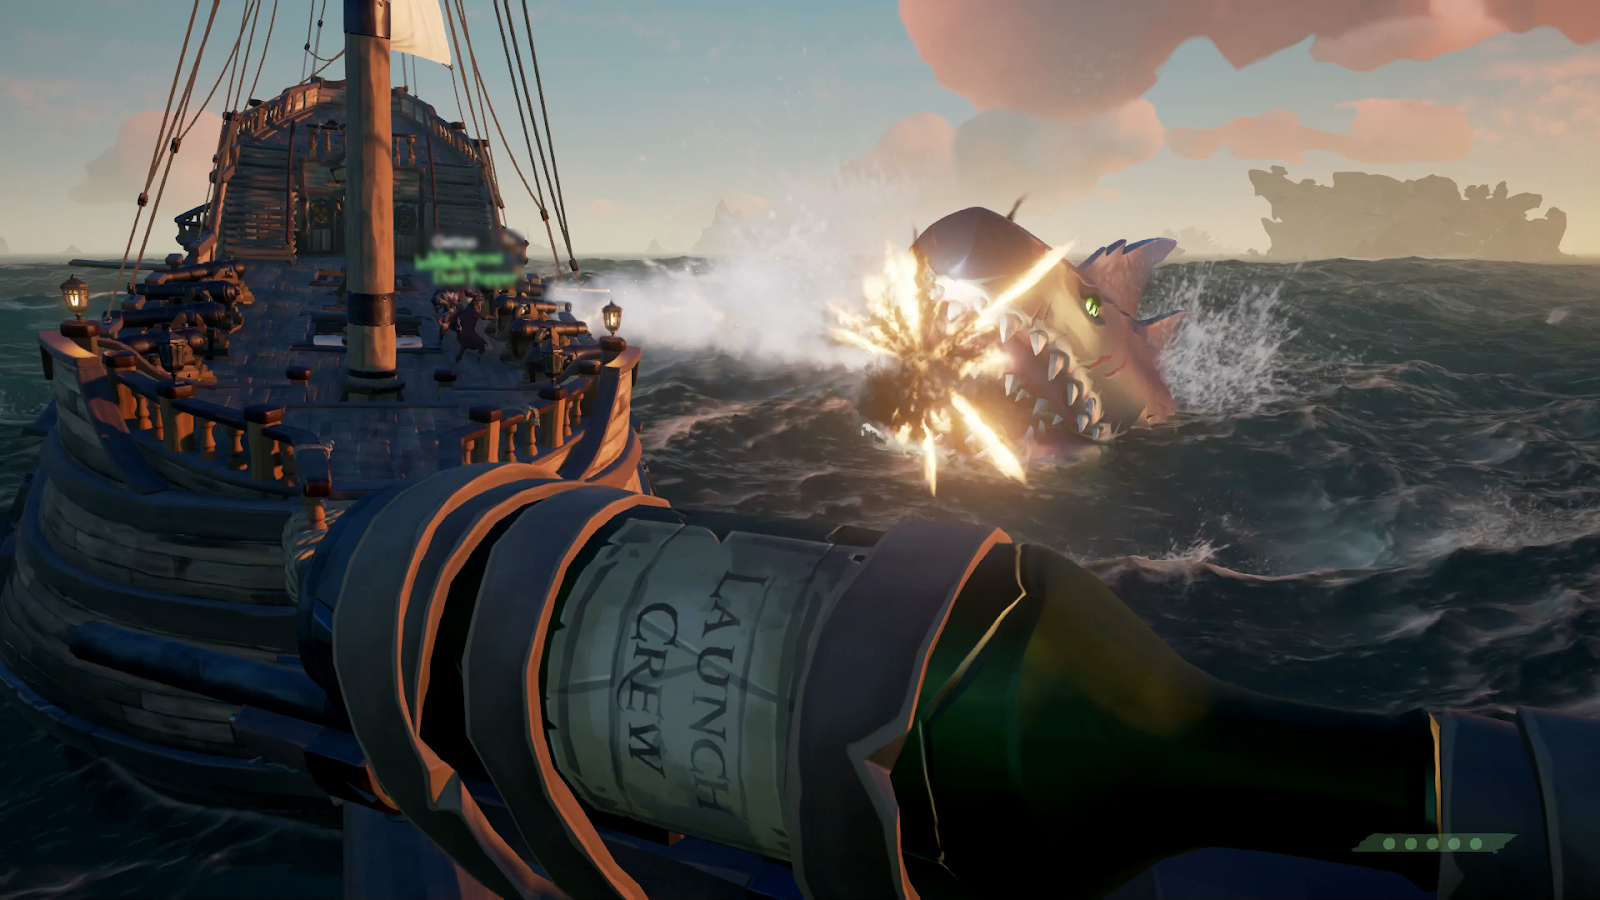 New Shark Hunt Finally Gets Sea Of Thieves Players To Cooperate